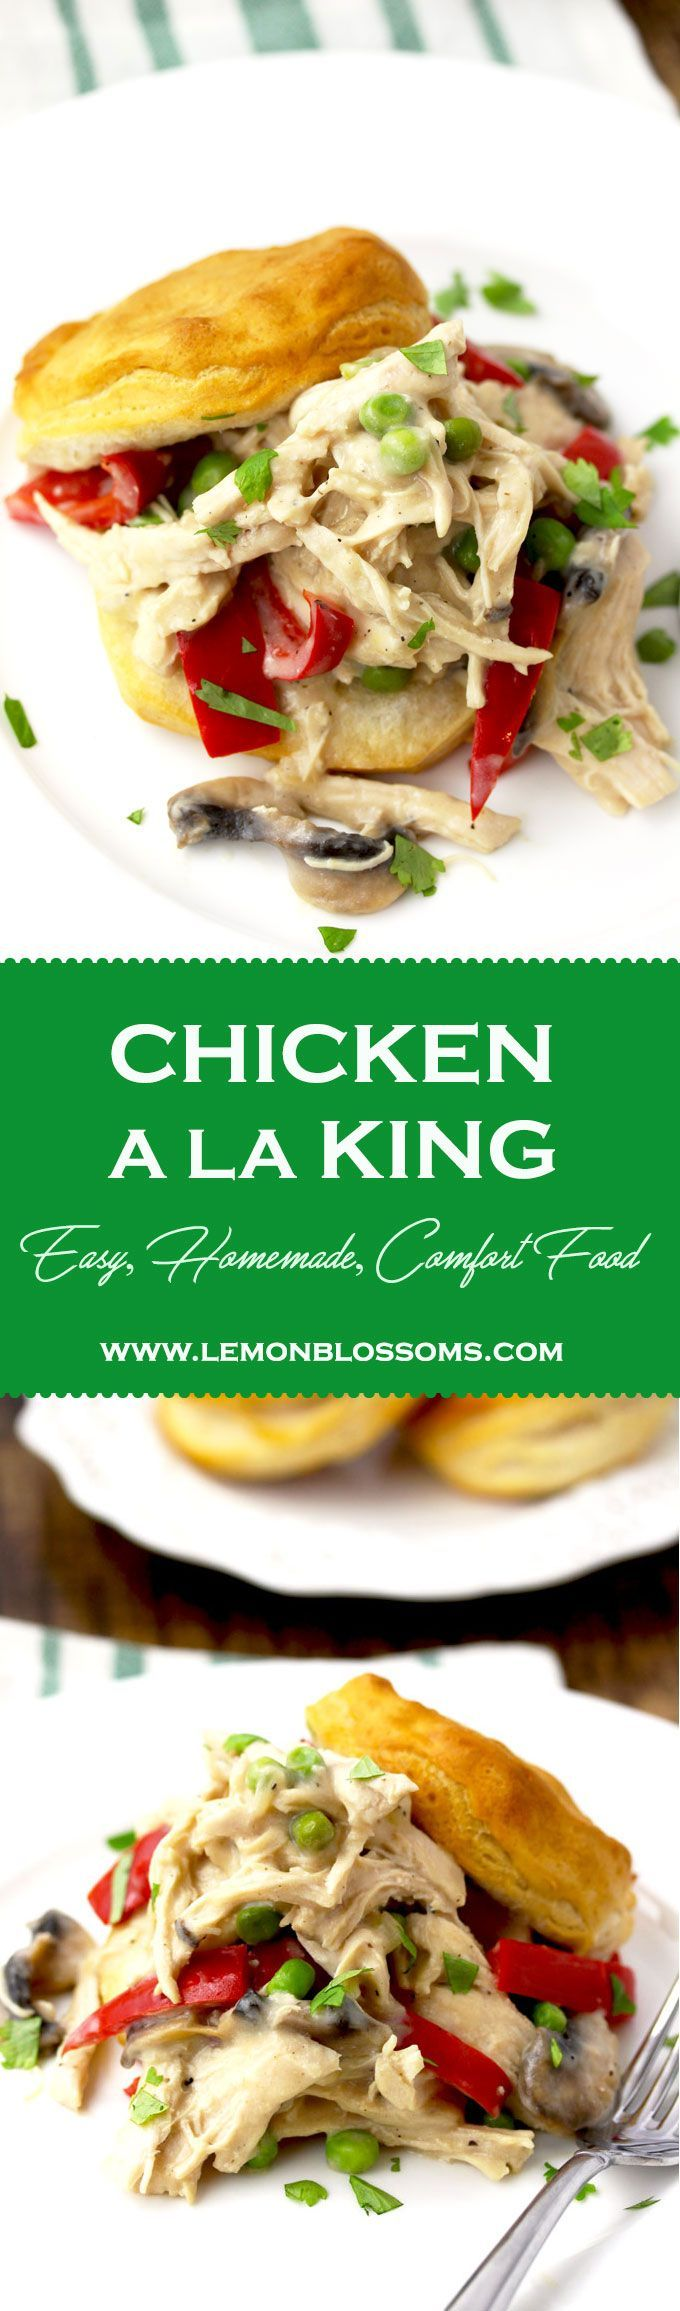 This easy Chicken A La King recipe is comfort food to the max. Made from scratch with tender chicken, mushrooms, red bell peppers and peas in a super creamy white sauce. Serve it over biscuits, toast, rice or in a pastry shell for a fancier presentation! #chicken #recipe #comfortfood #chickenalaking via @lmnblossoms